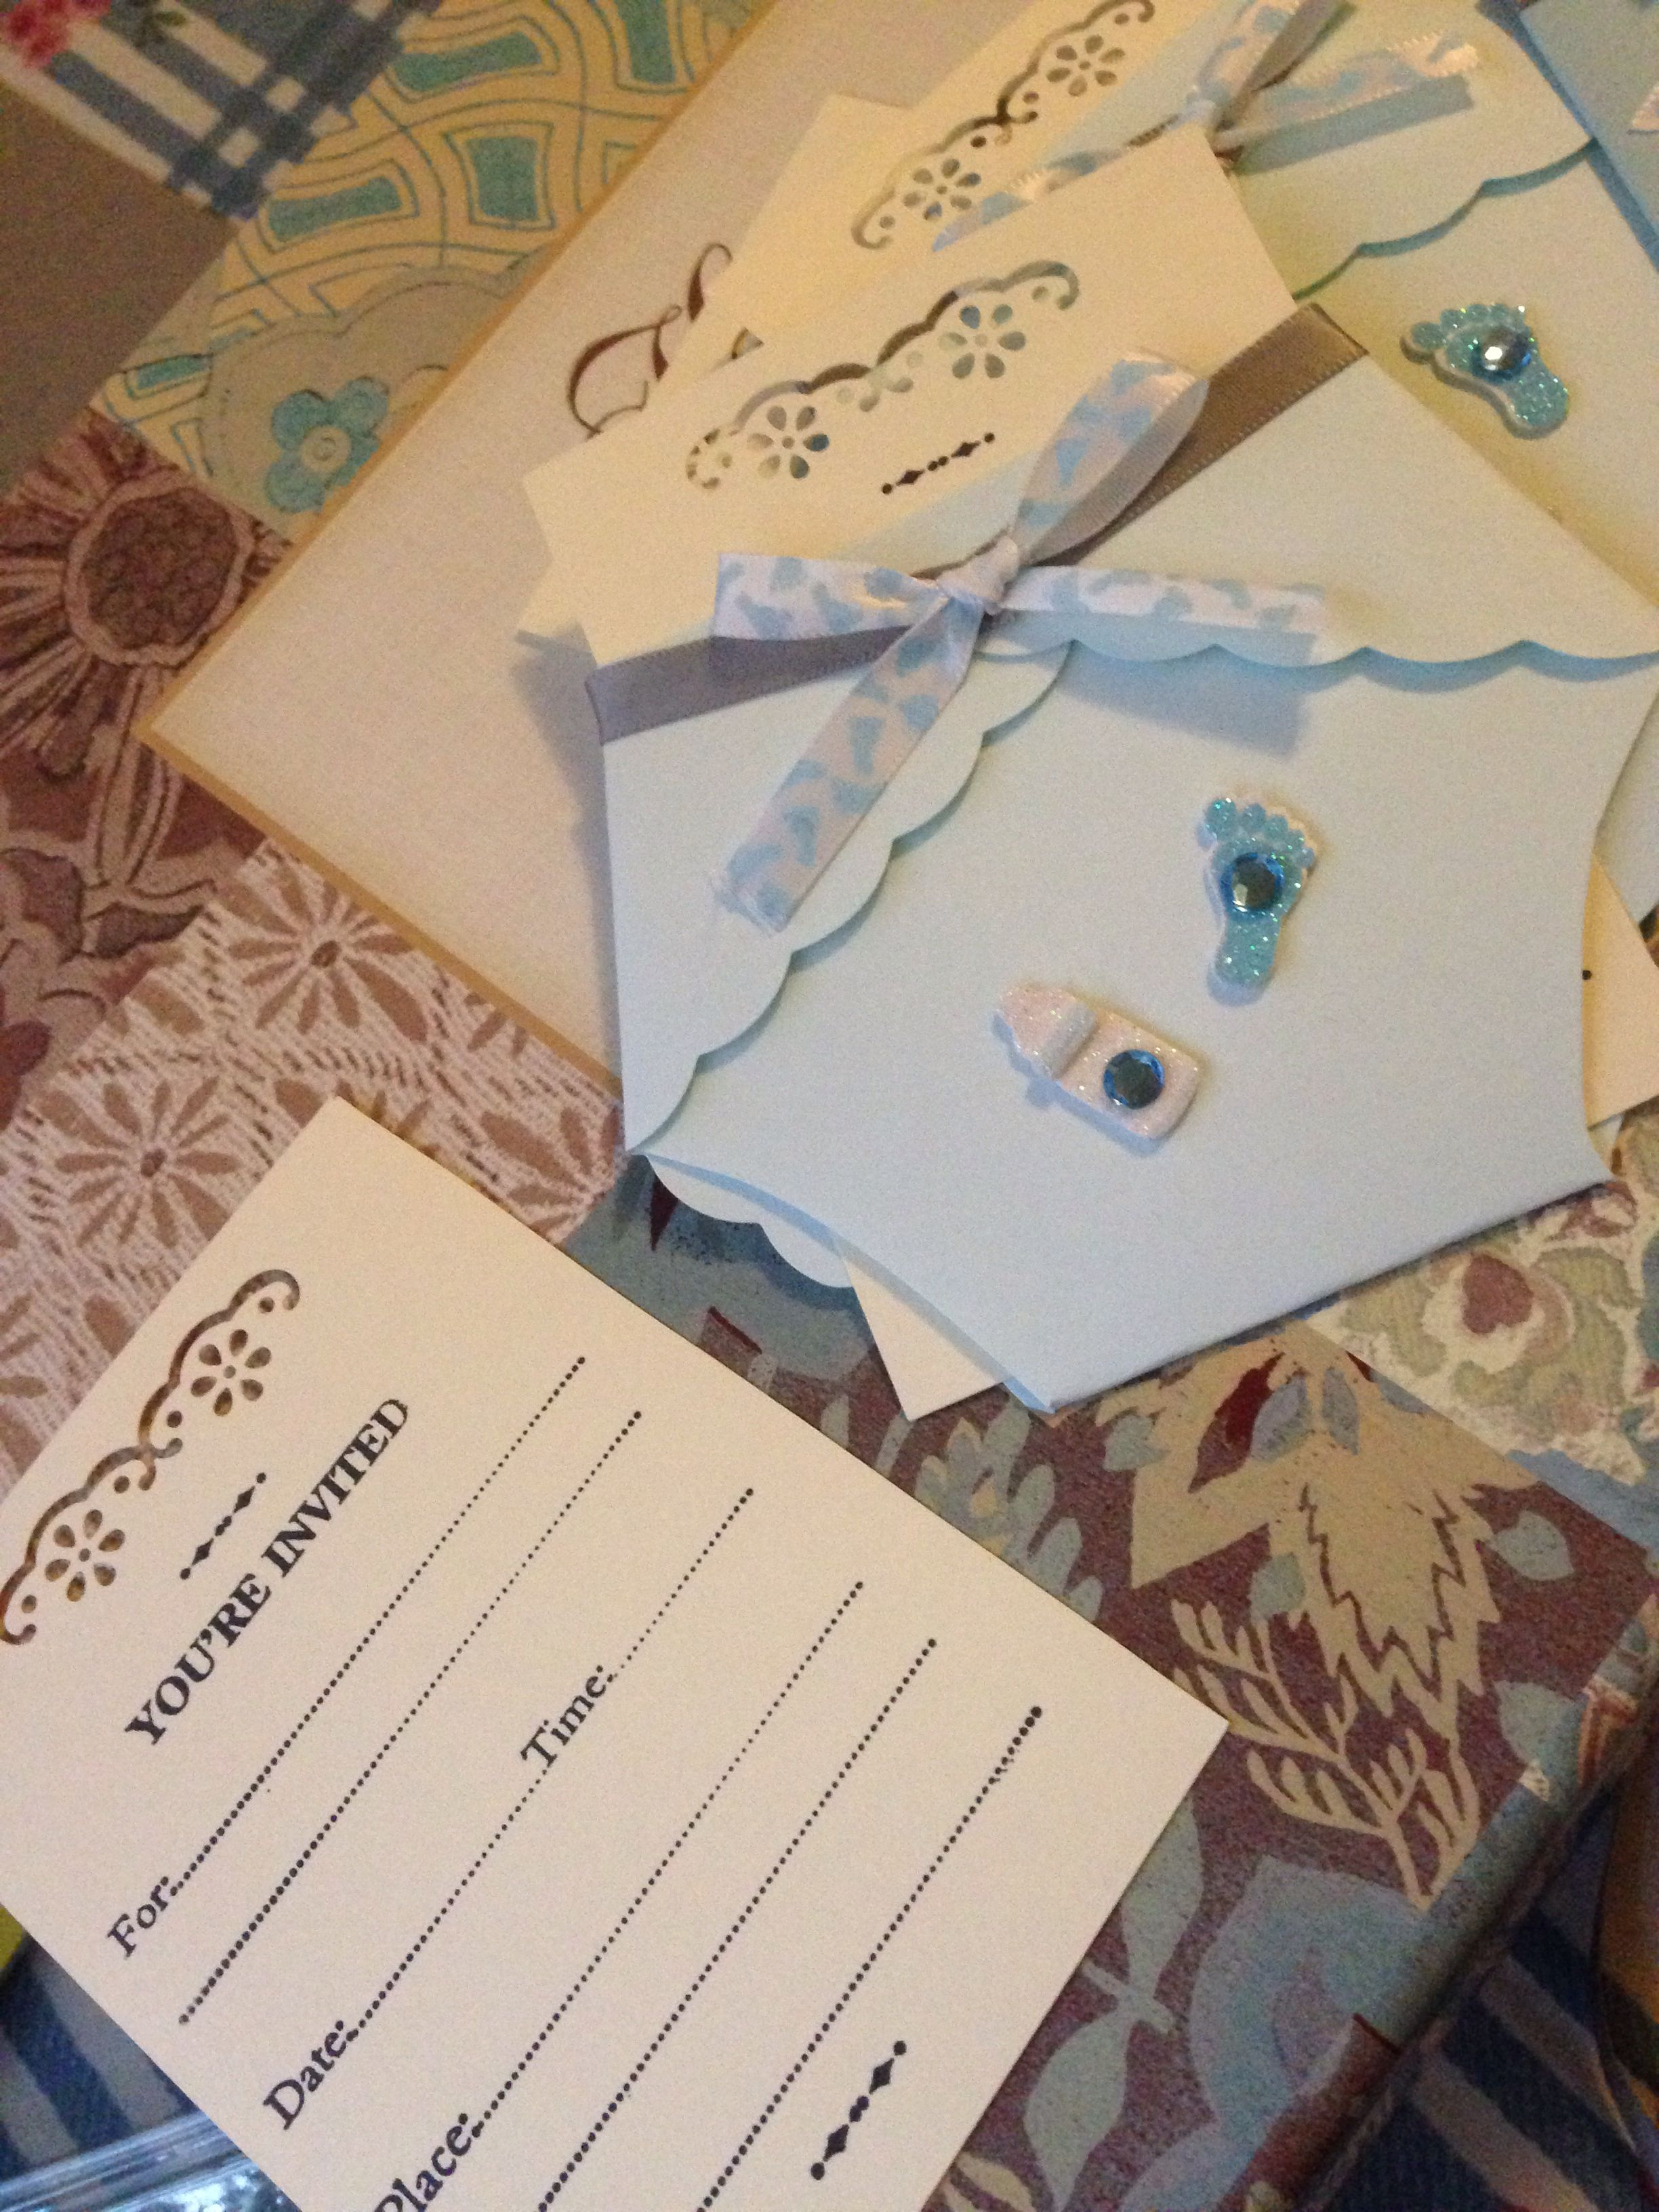 Baby Shower Invitation Diy Done With A Your Invited Stamp From Michaels And Diaper Template Ribbons Stickers To Add Some Touch It Easy